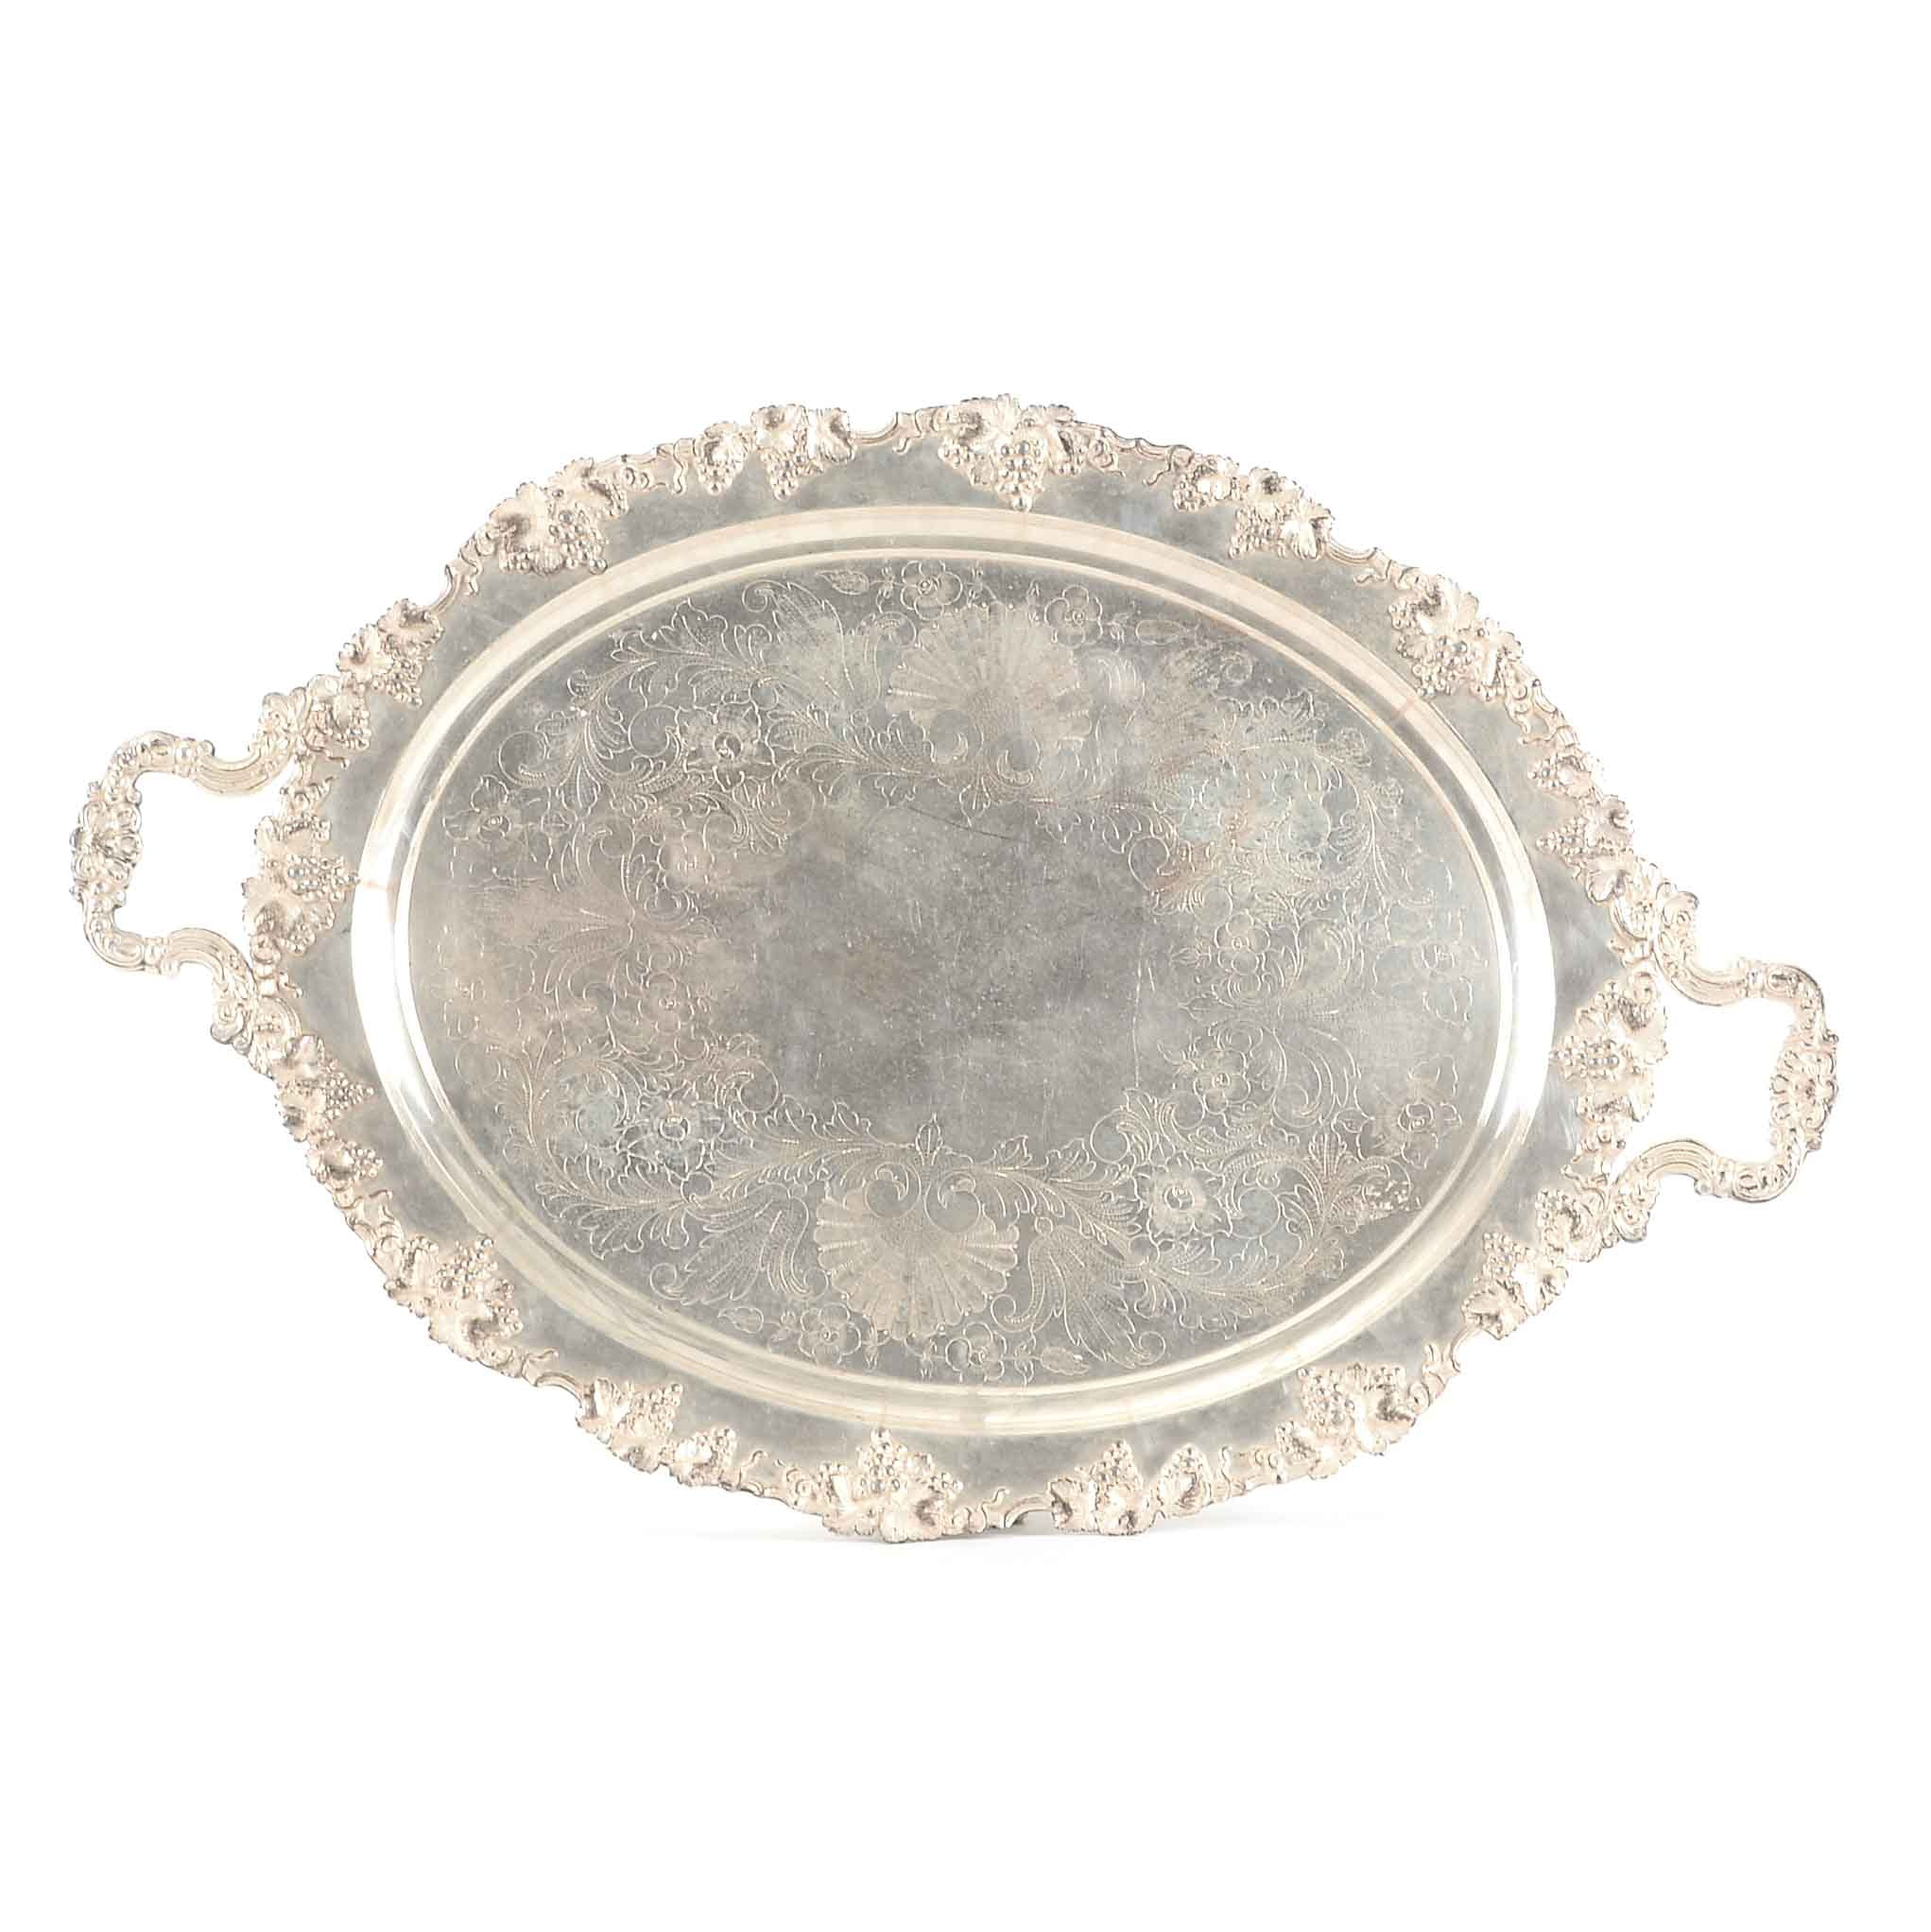 Barbour Silver Plate Co. Footed Tray